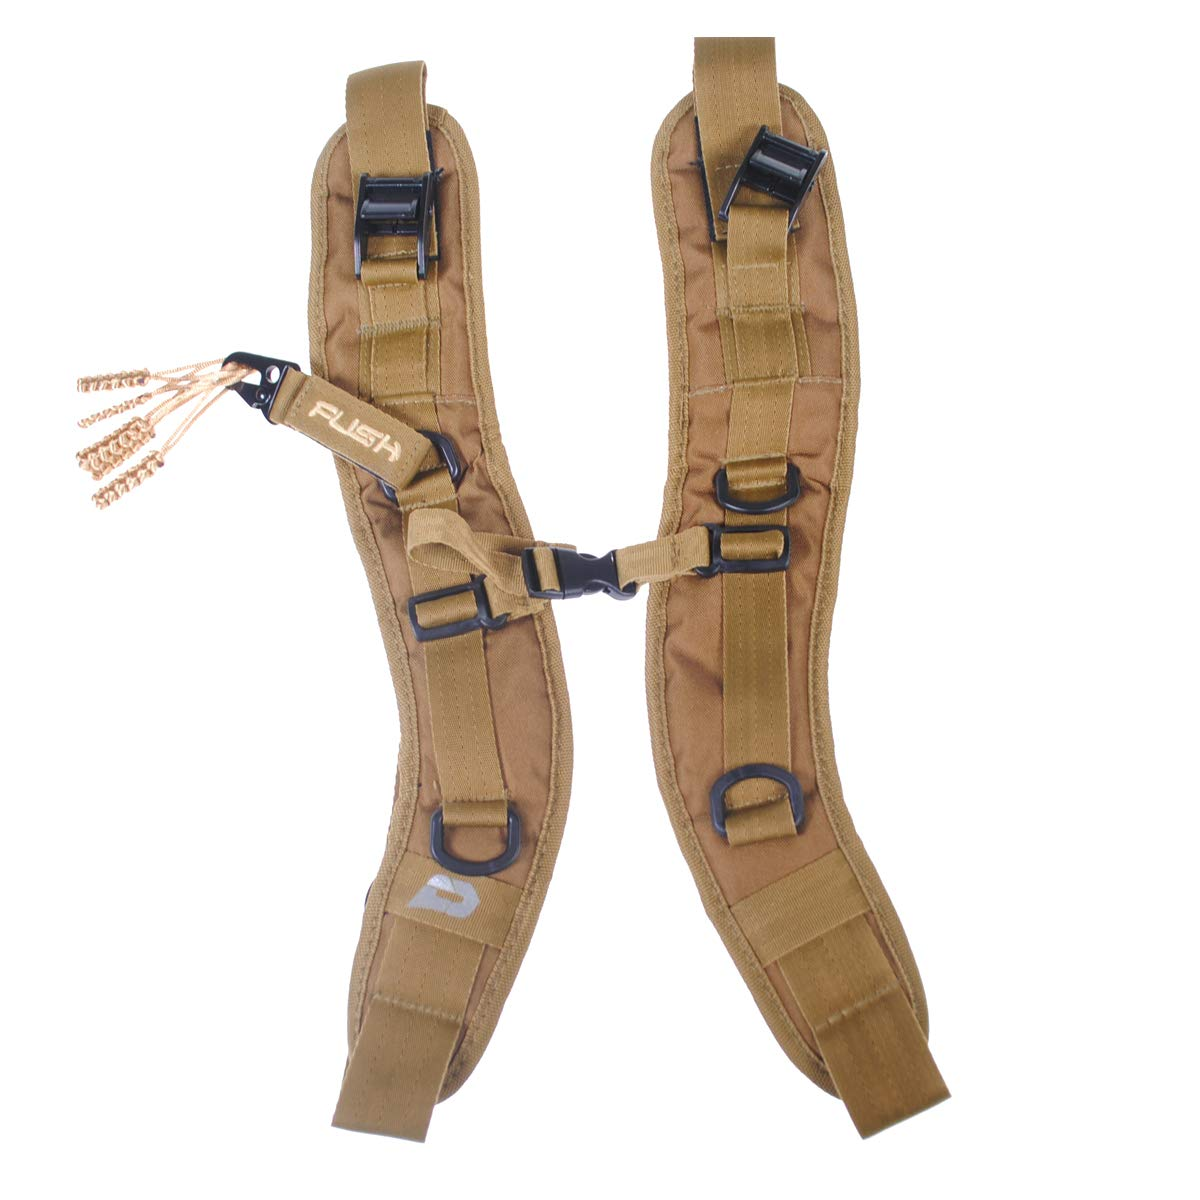 PUSH Paintball Backpack and Div1 Gear Bag Strap Kit (Tan)